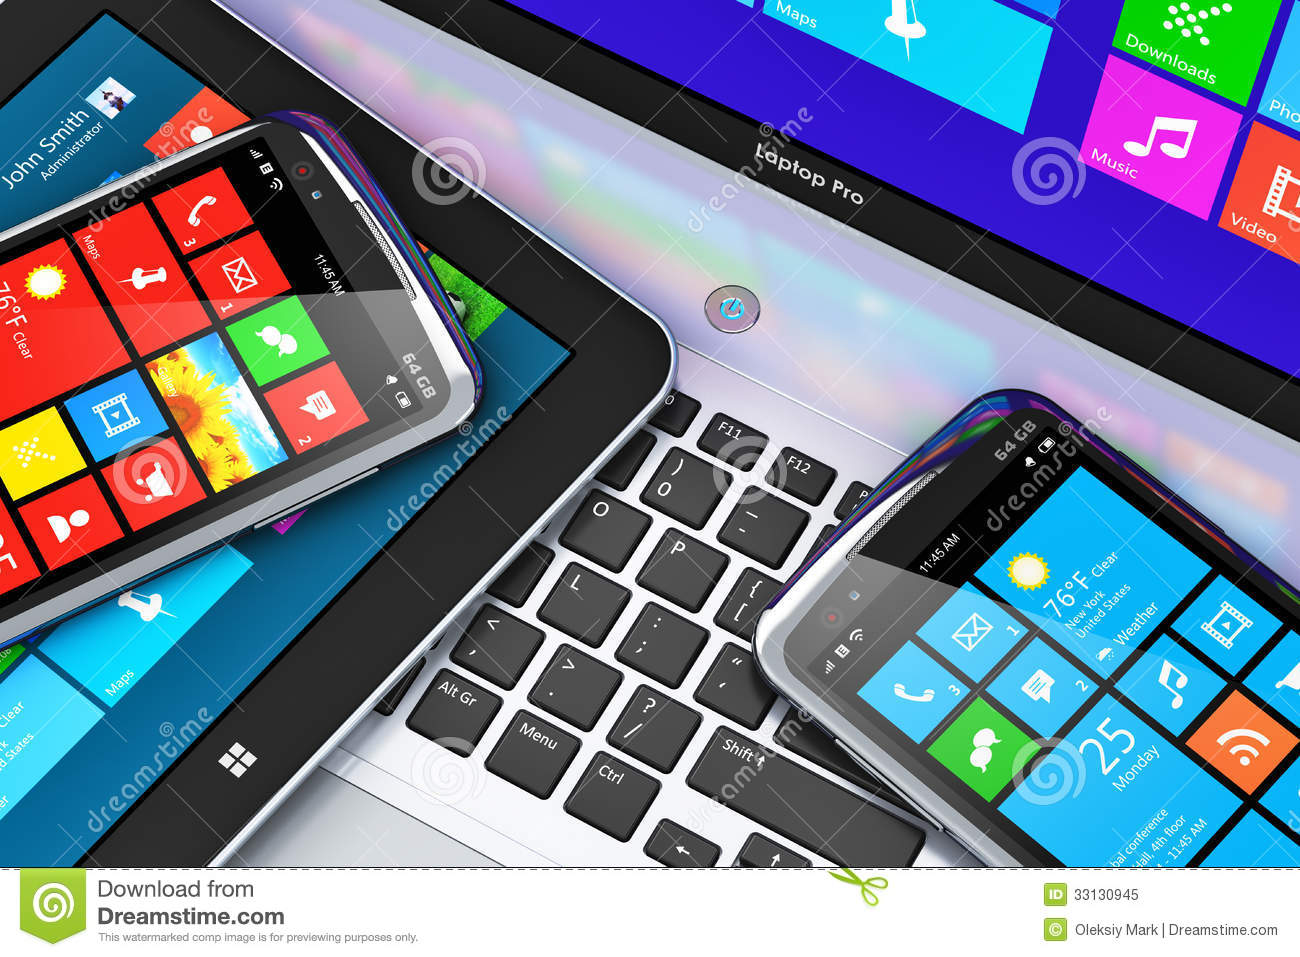 Mobile Devices With Touchscreen Interface Stock Illustration  Image 33130945